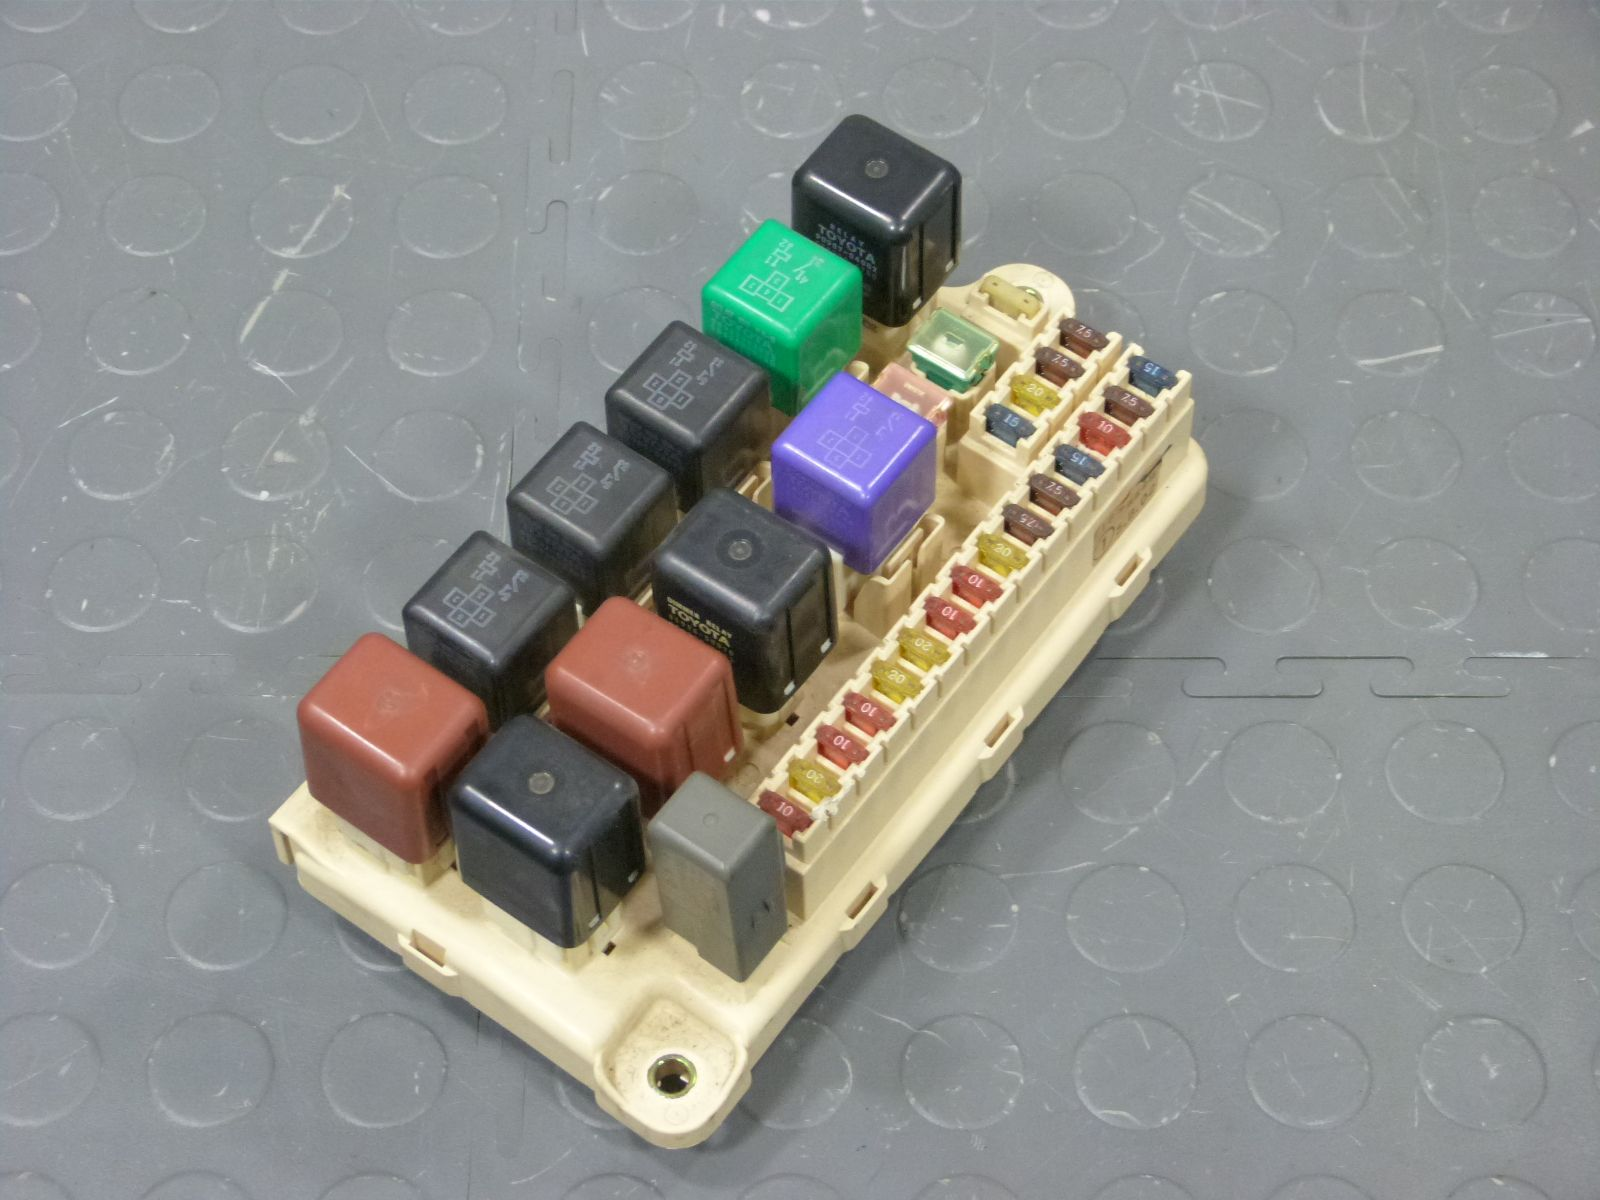 Lexus Ls400 Fuse Boxes Free Wiring Diagram For You 97 Box 95 Underhood Assembly Relays Fuses 1997 Location 1998